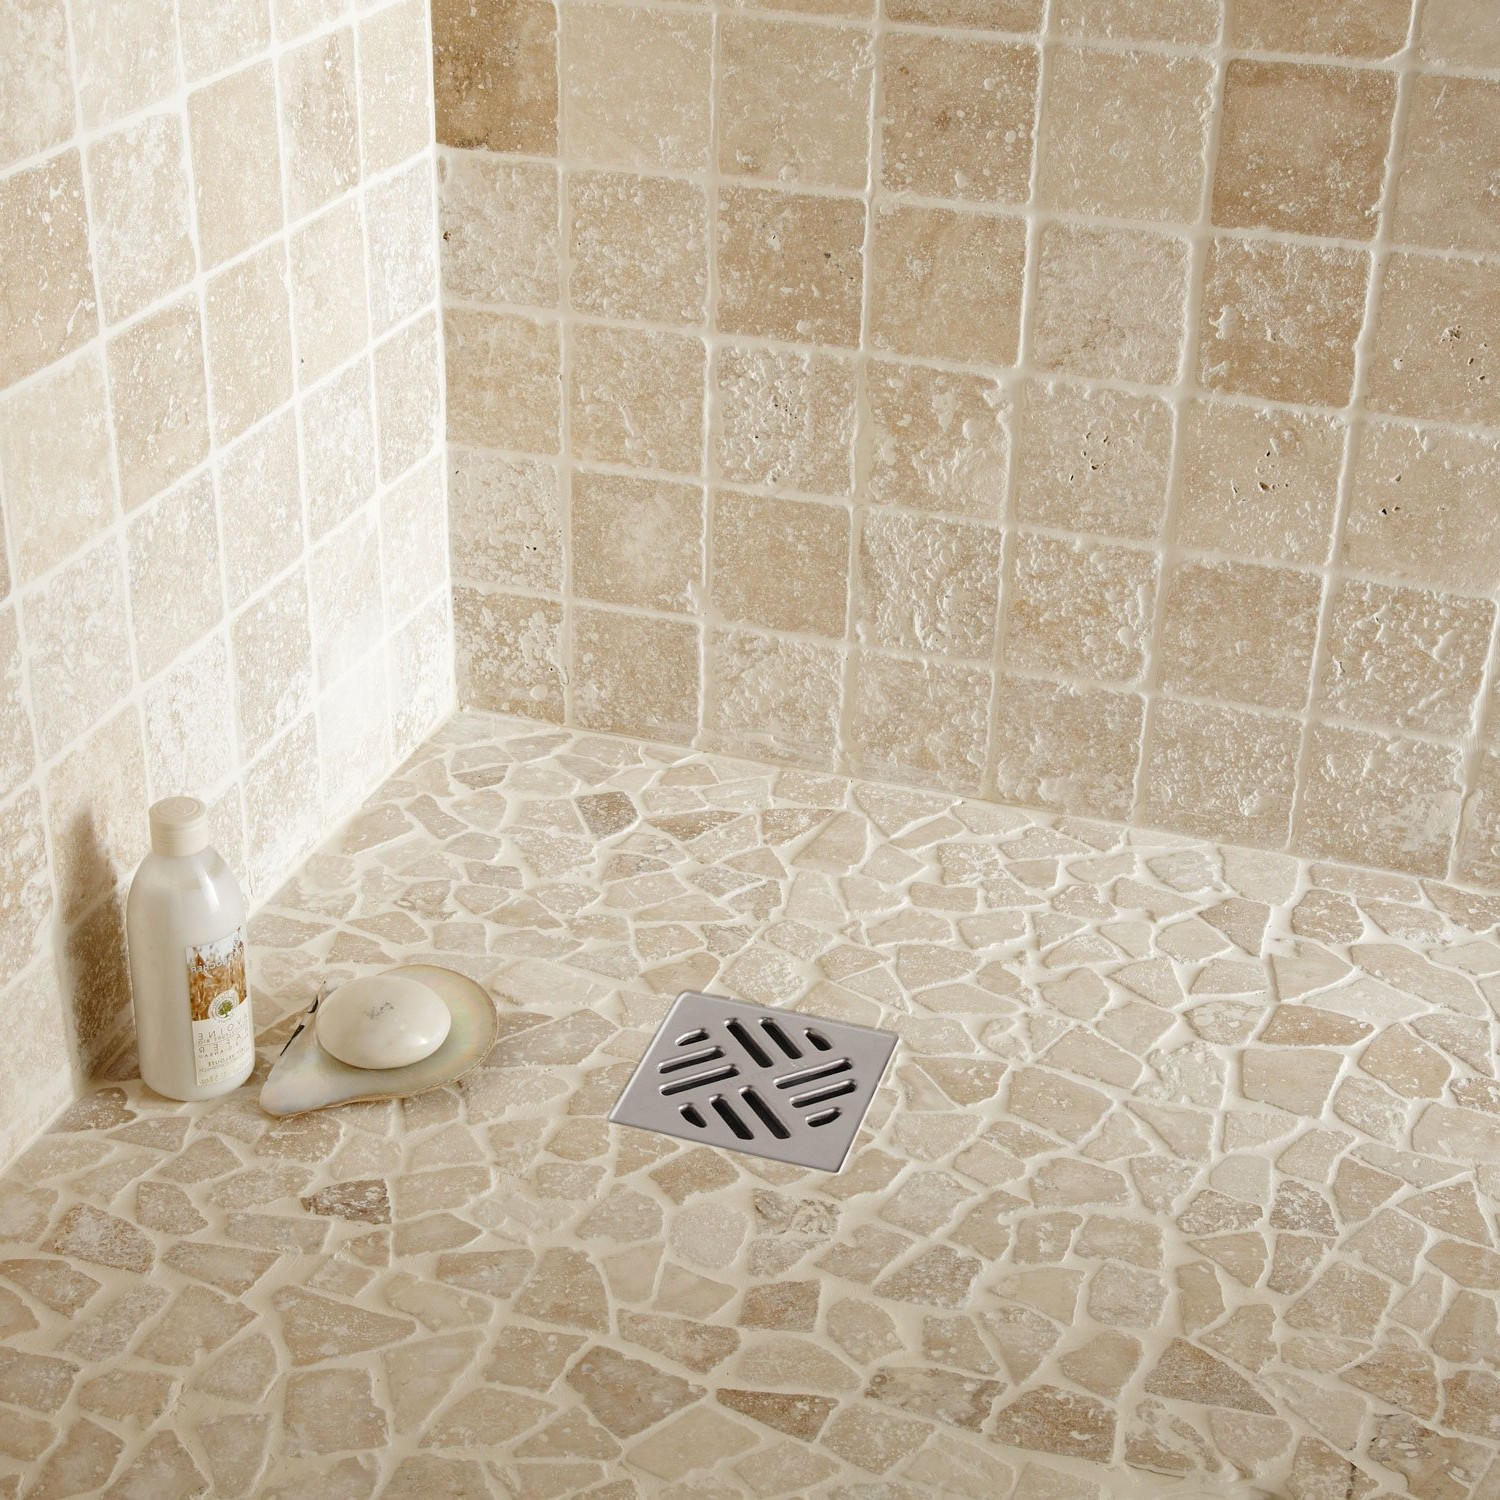 Carrelage travertin castorama excellent carrelage sol for Carrelage sol salle de bain leroy merlin